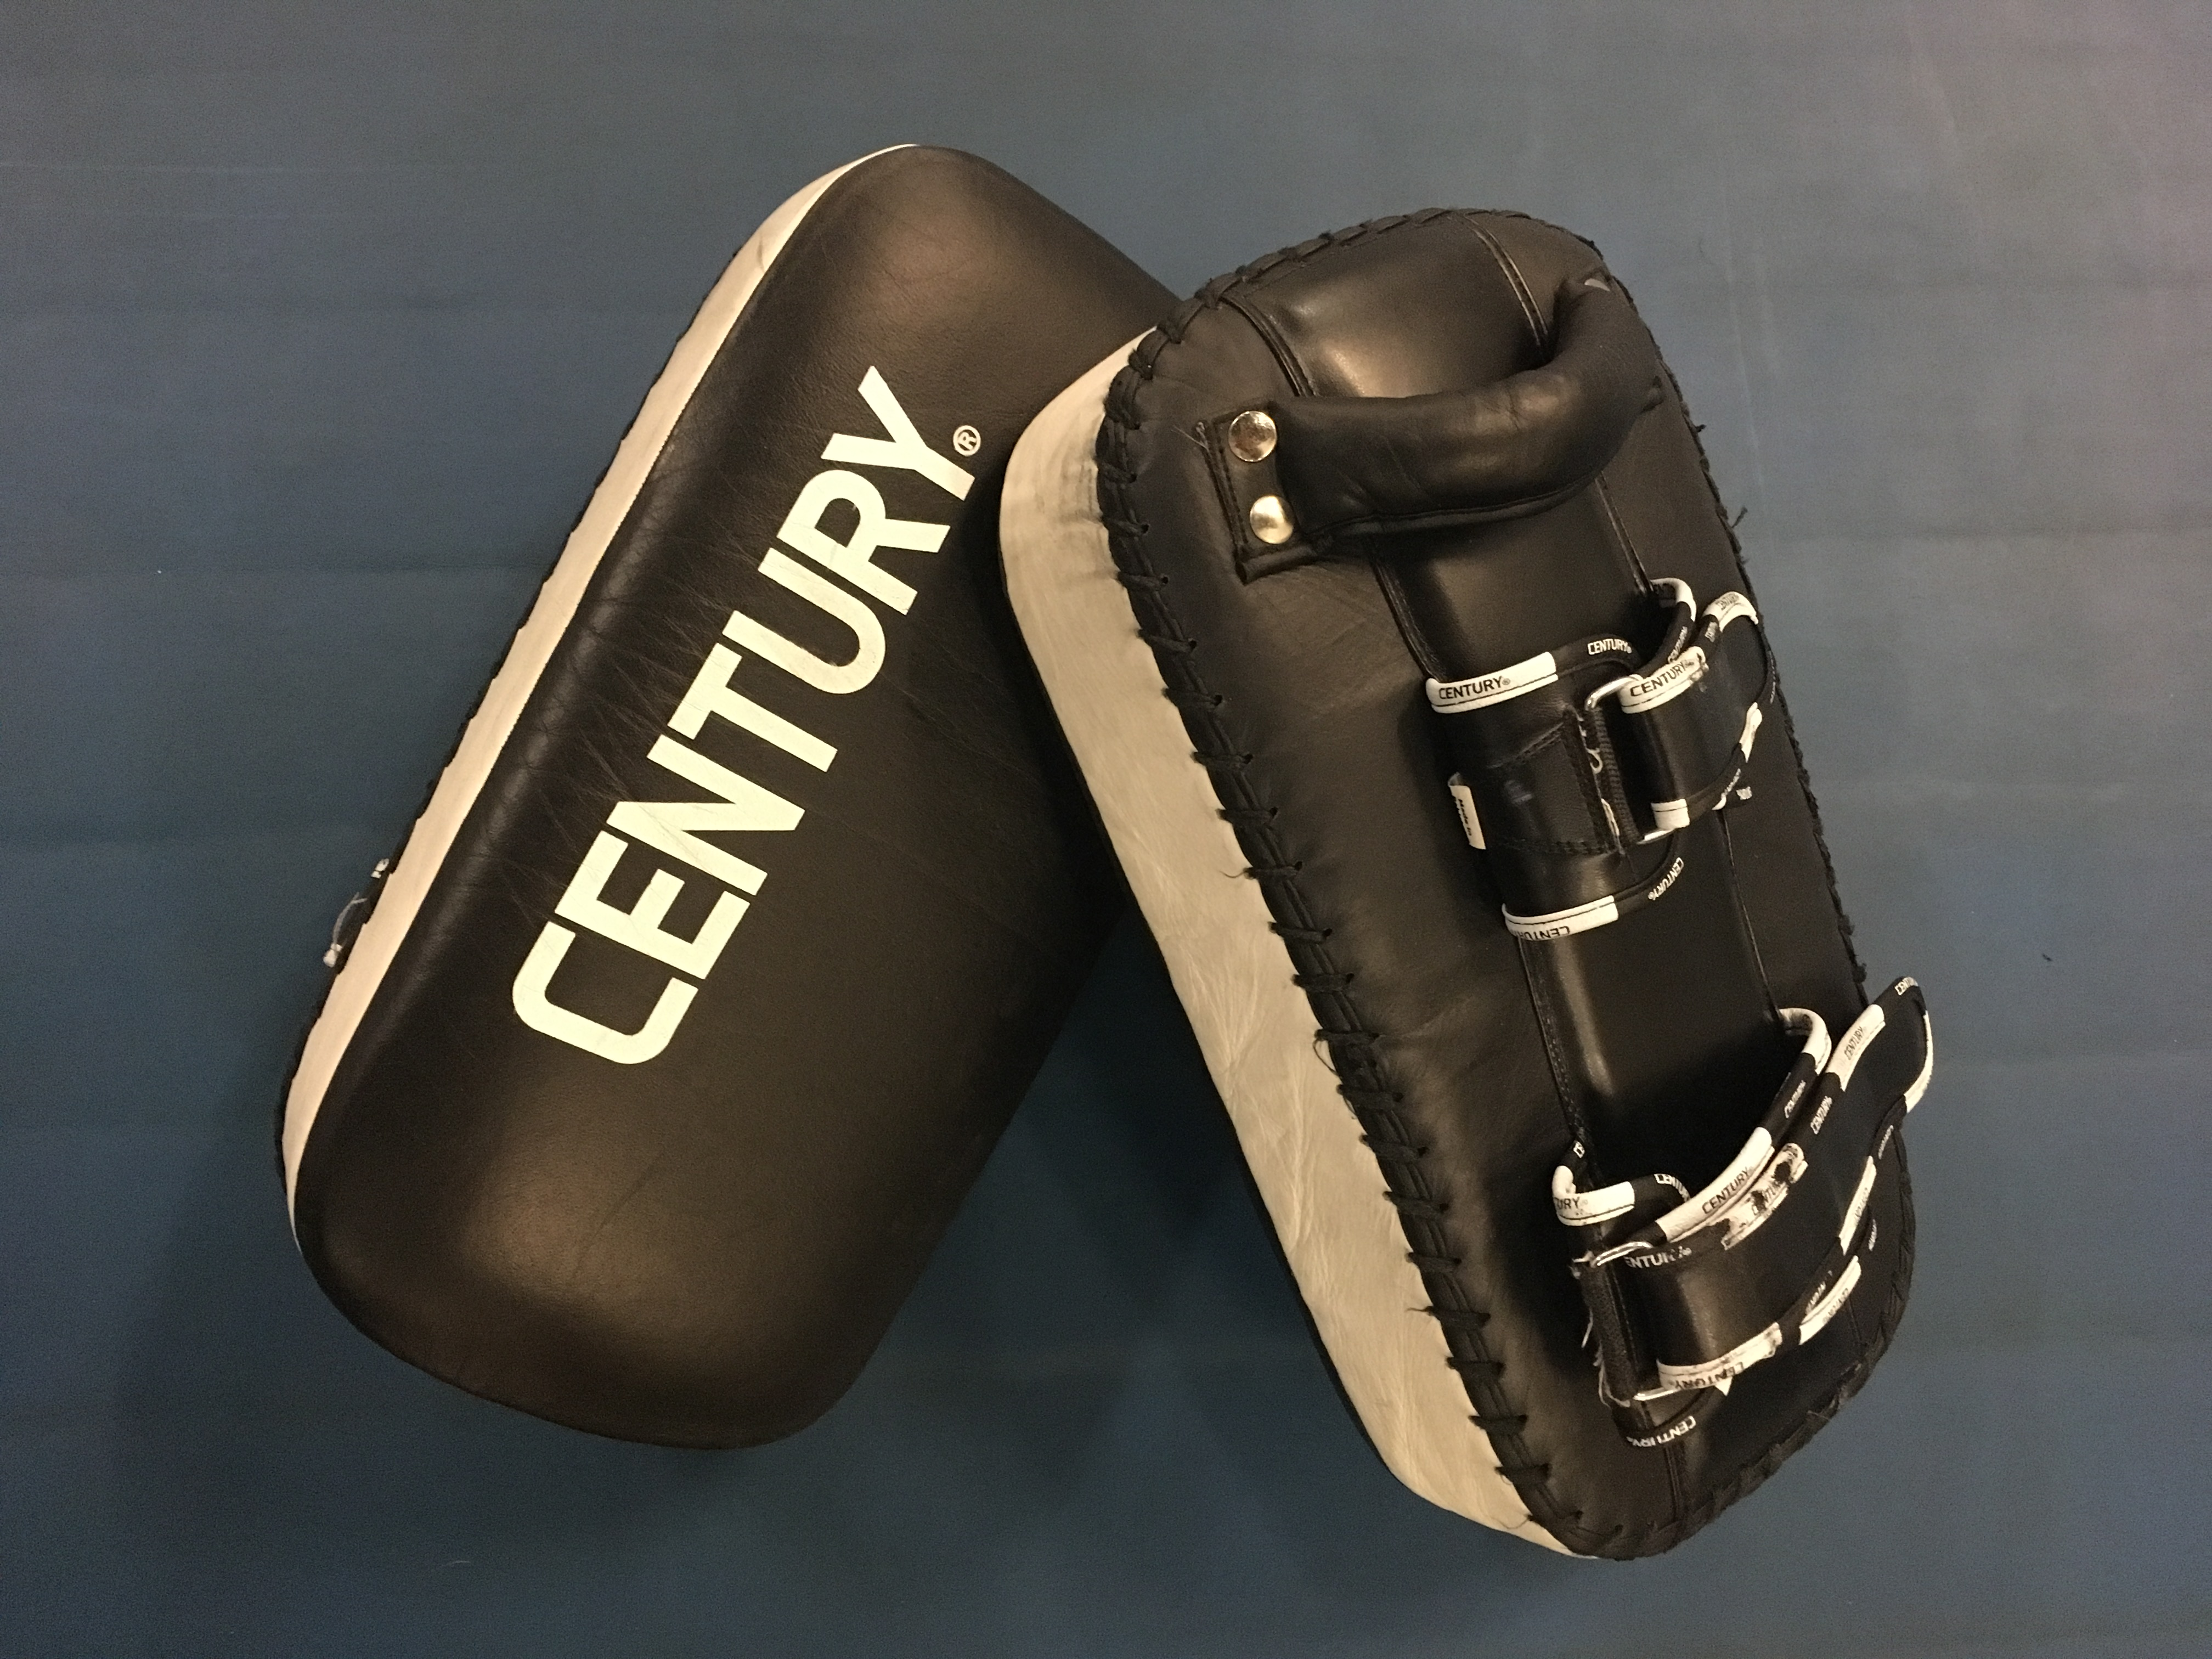 Muay thai pads used for kickboxing.